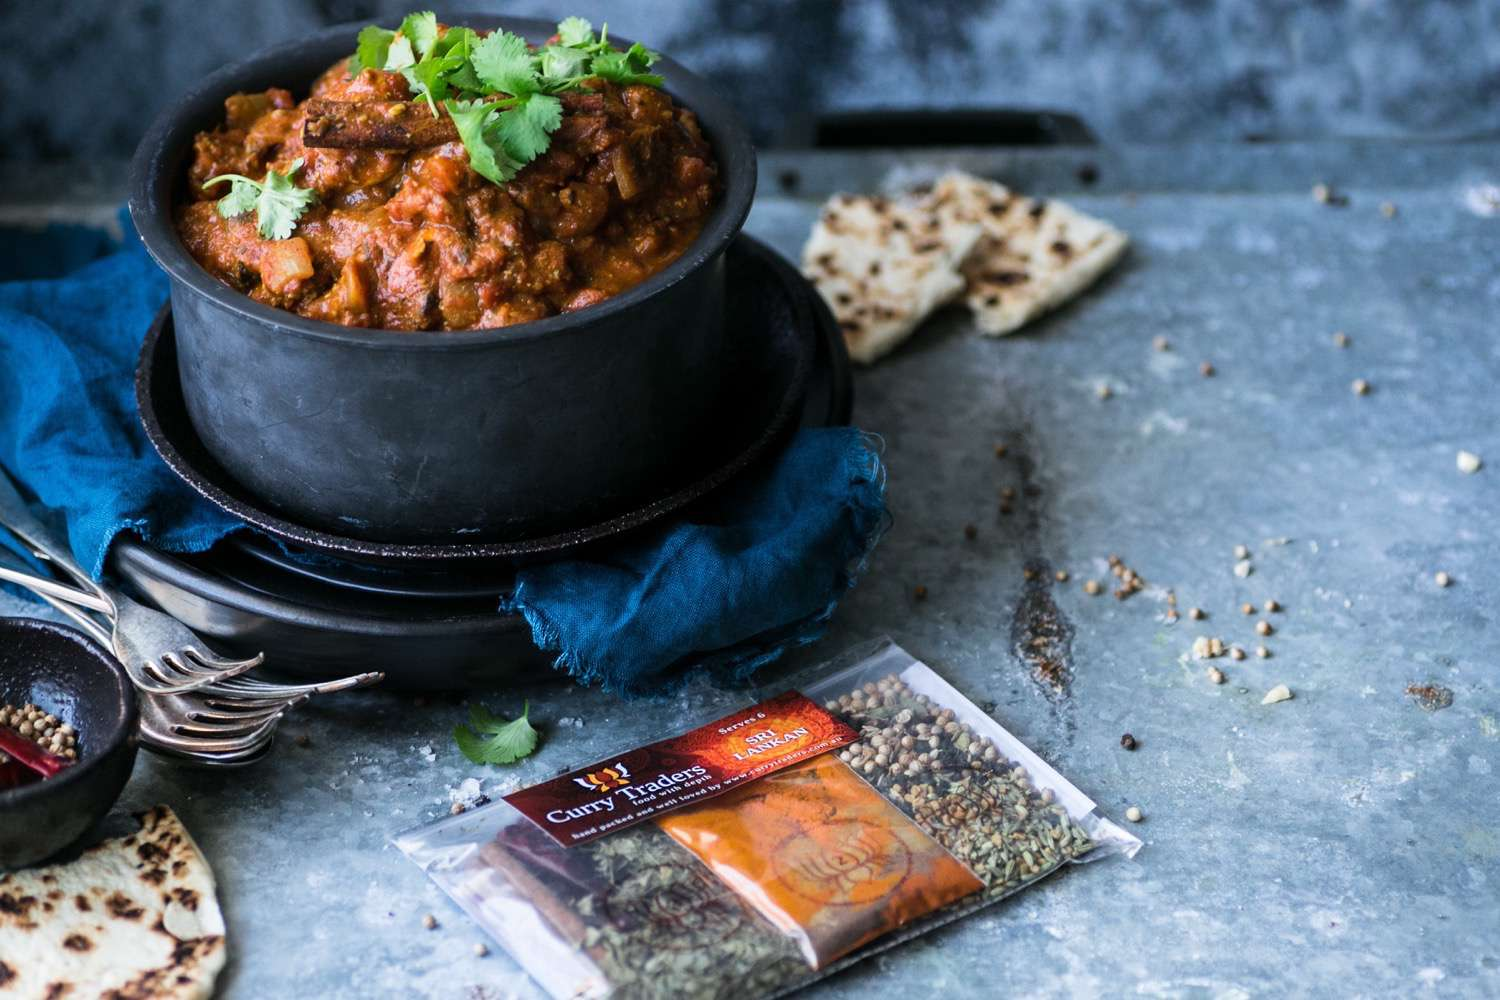 Sri Lankan Gourmet Curry Kit to make at home